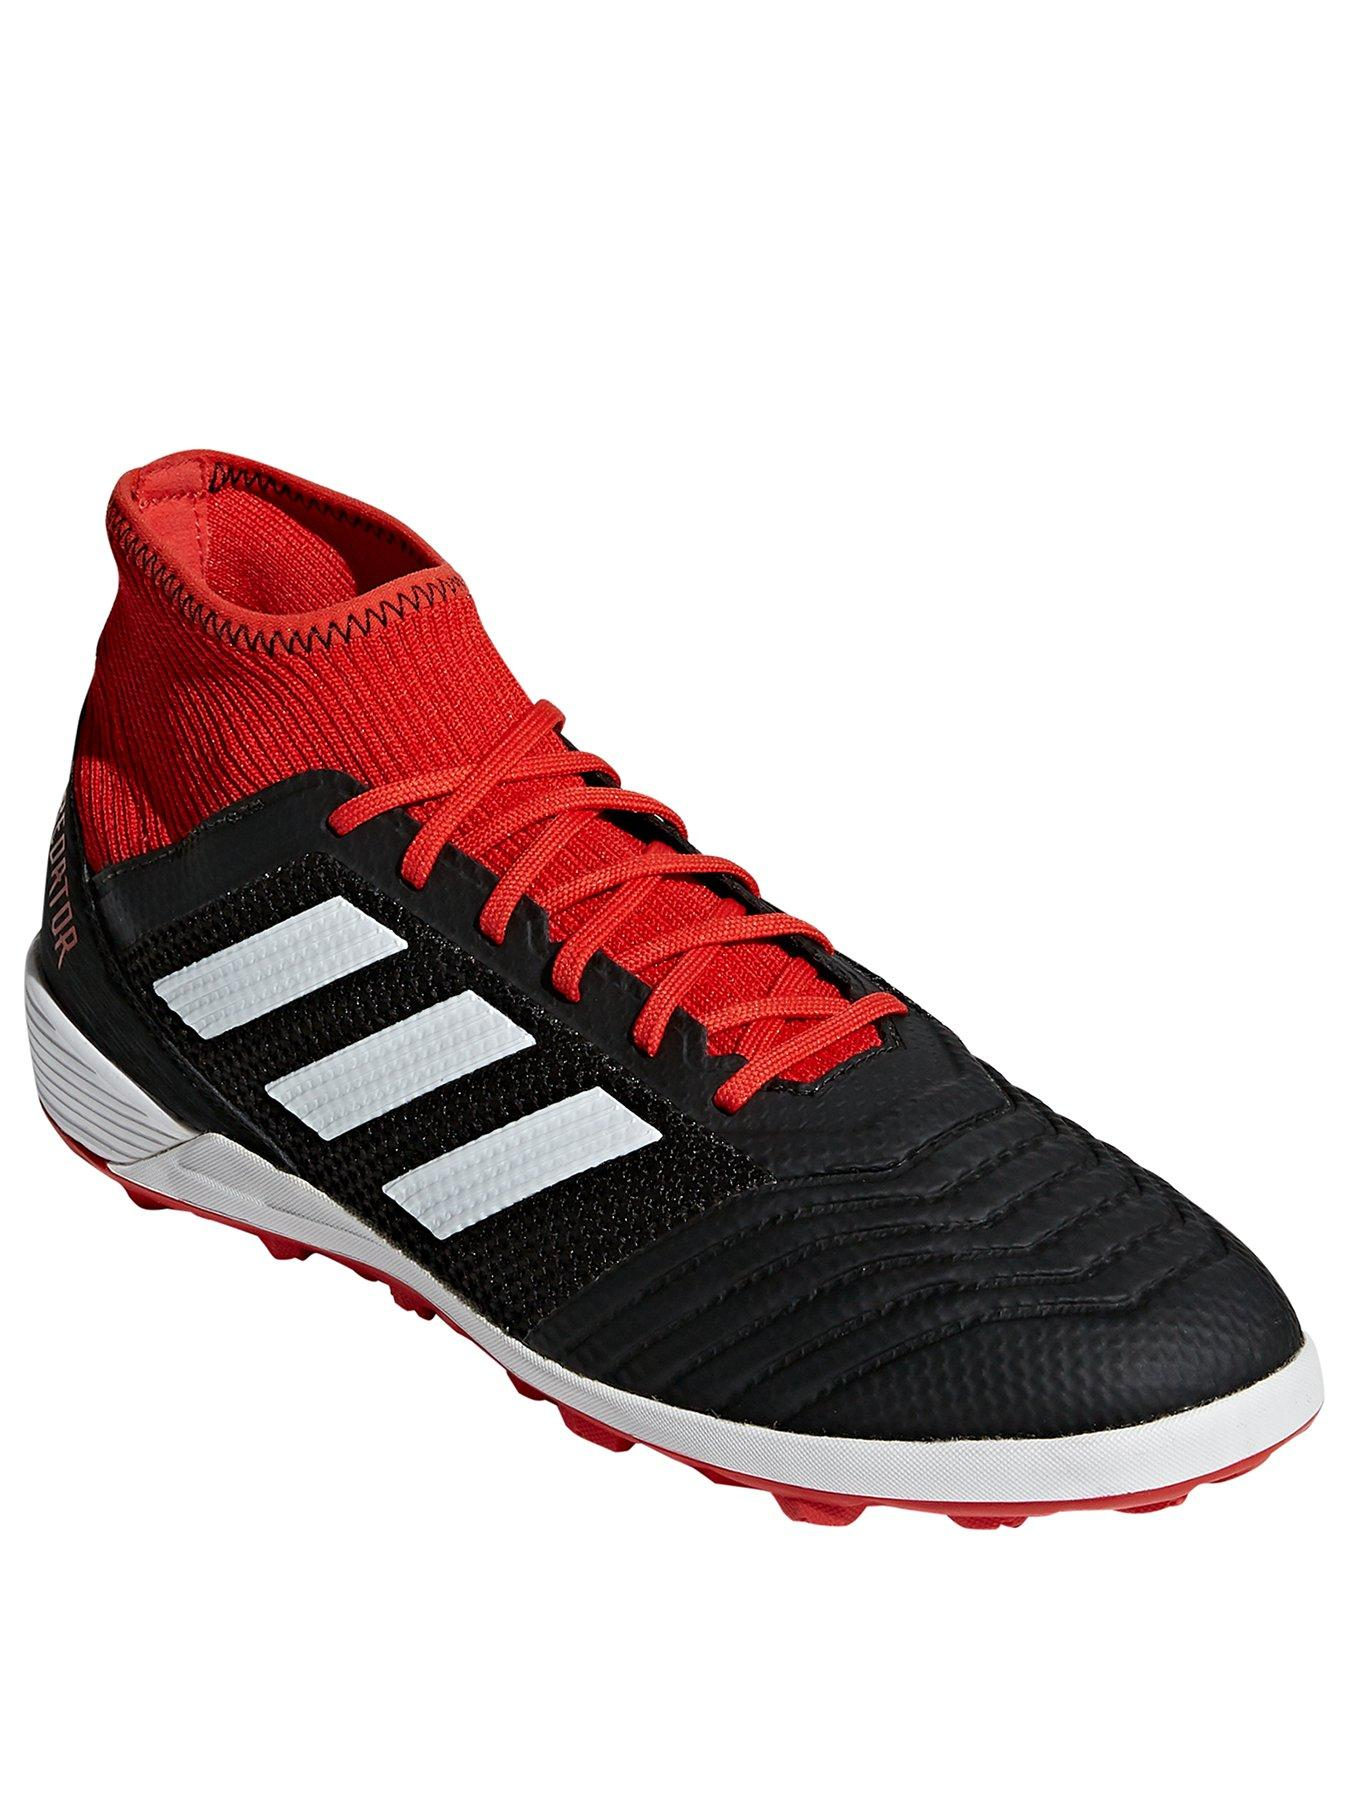 adidas predator football shoes